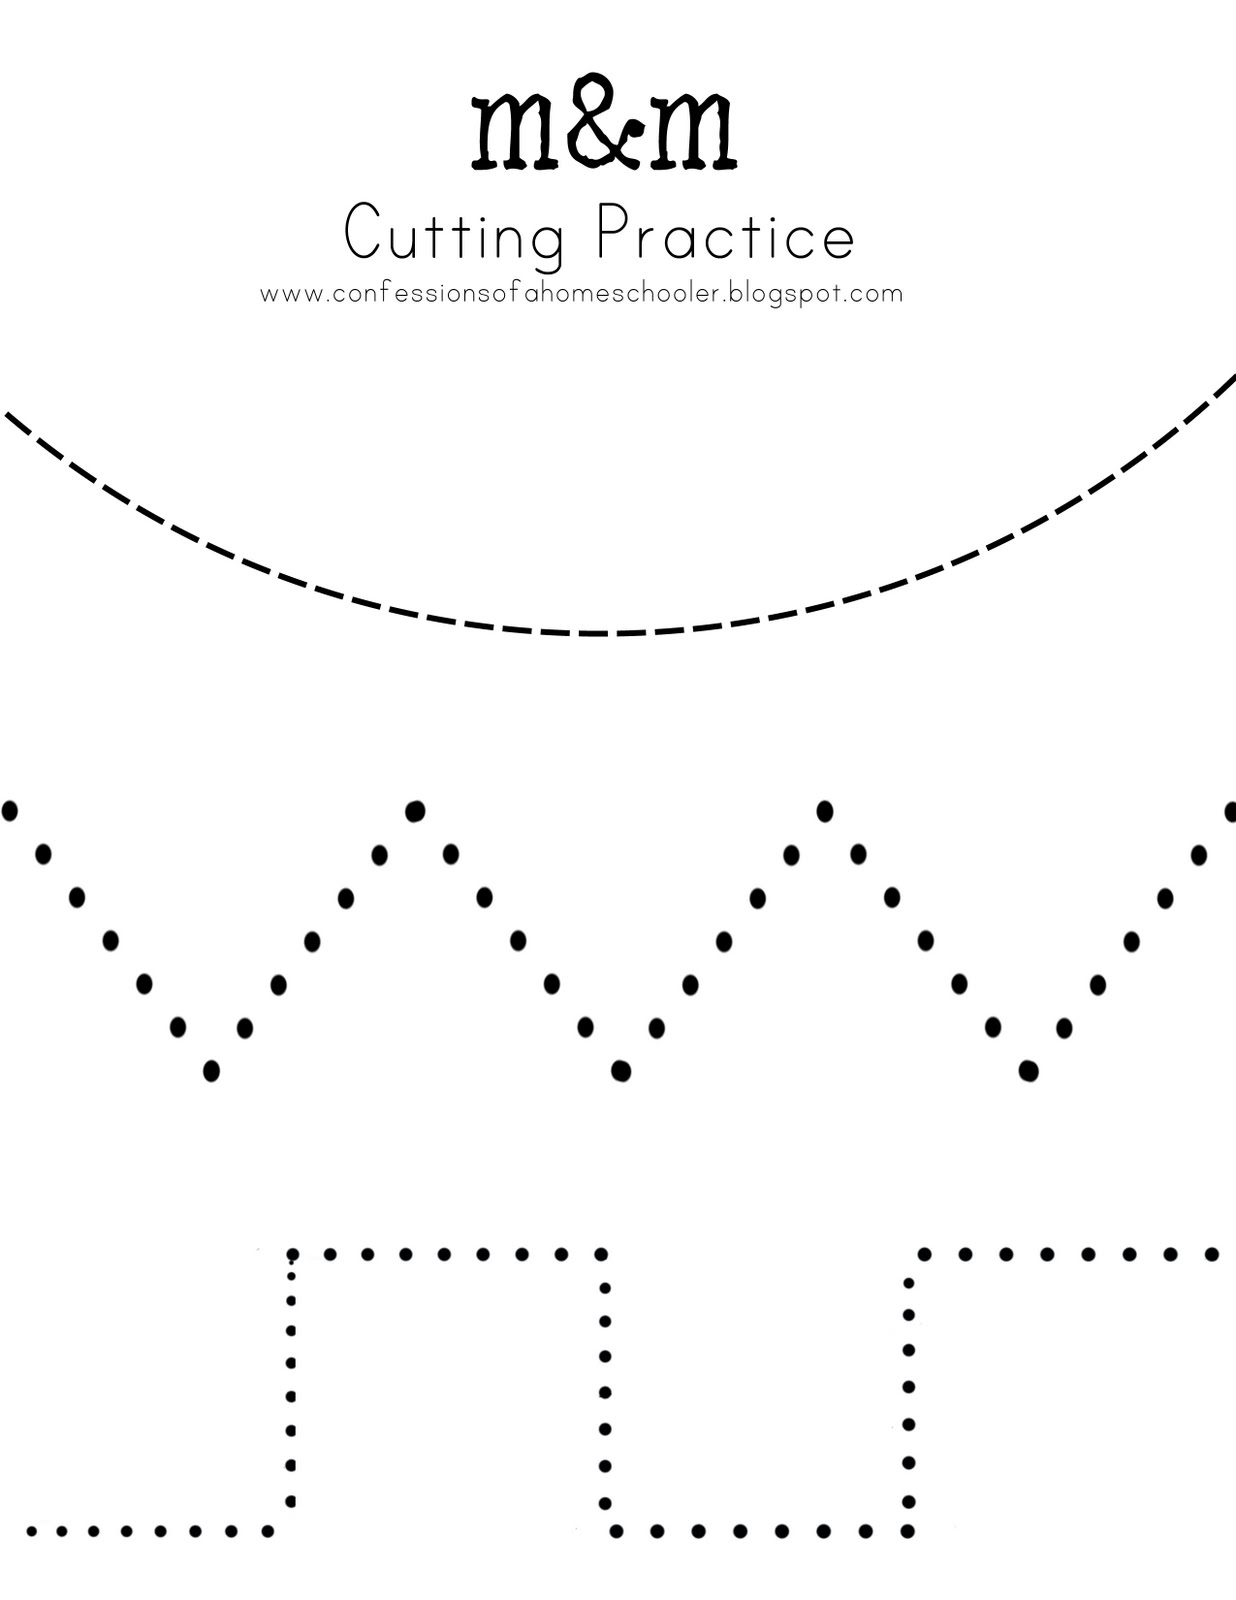 Universal image pertaining to cutting practice printable